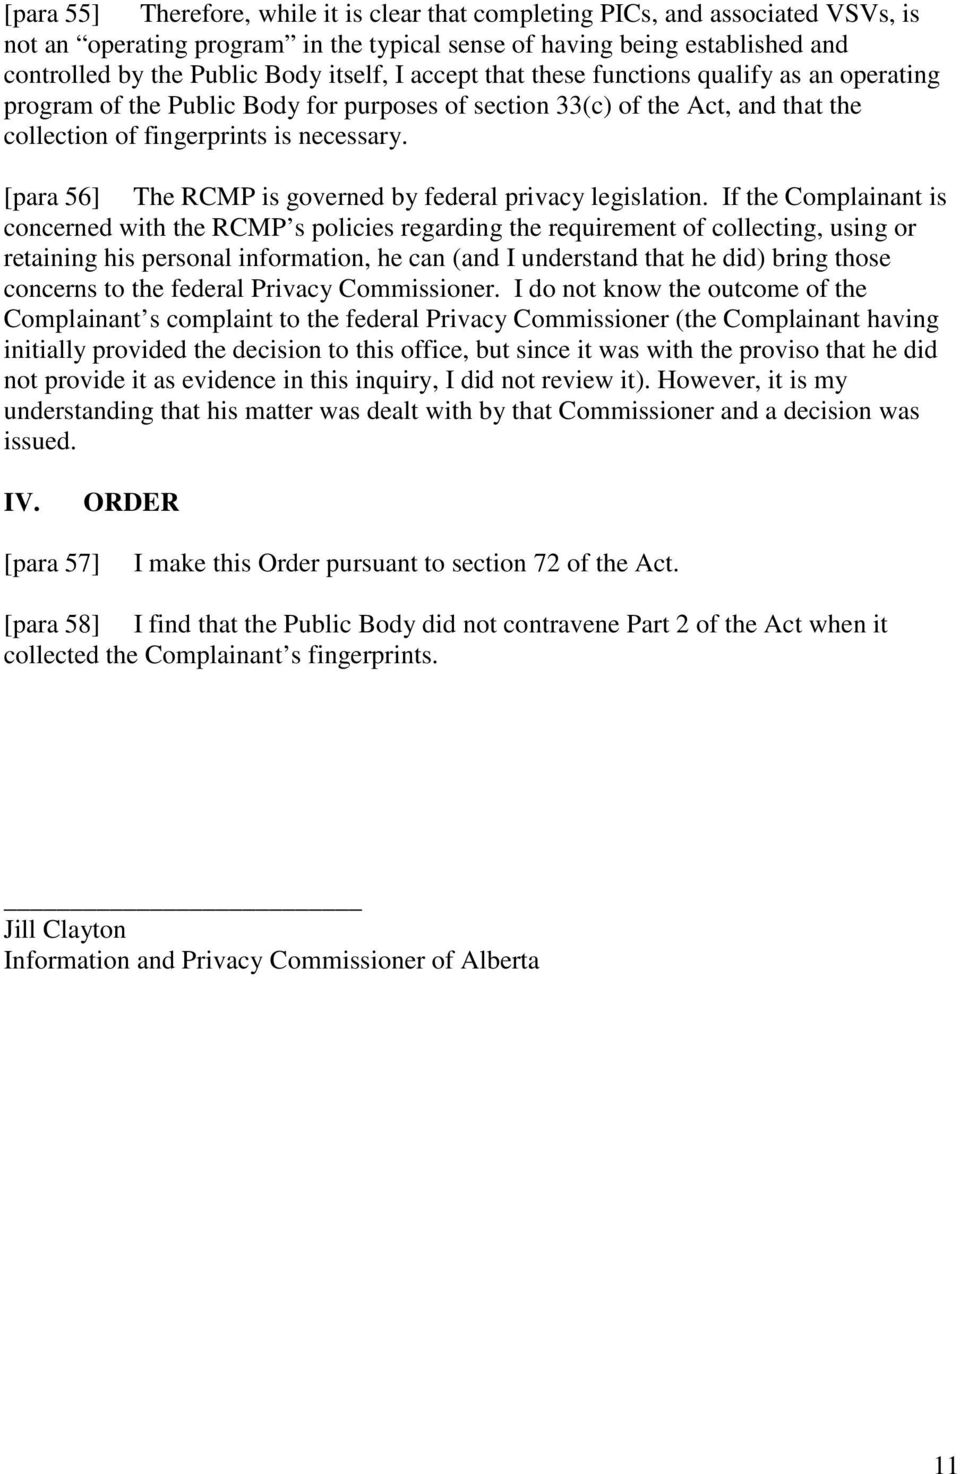 [para 56] The RCMP is governed by federal privacy legislation.